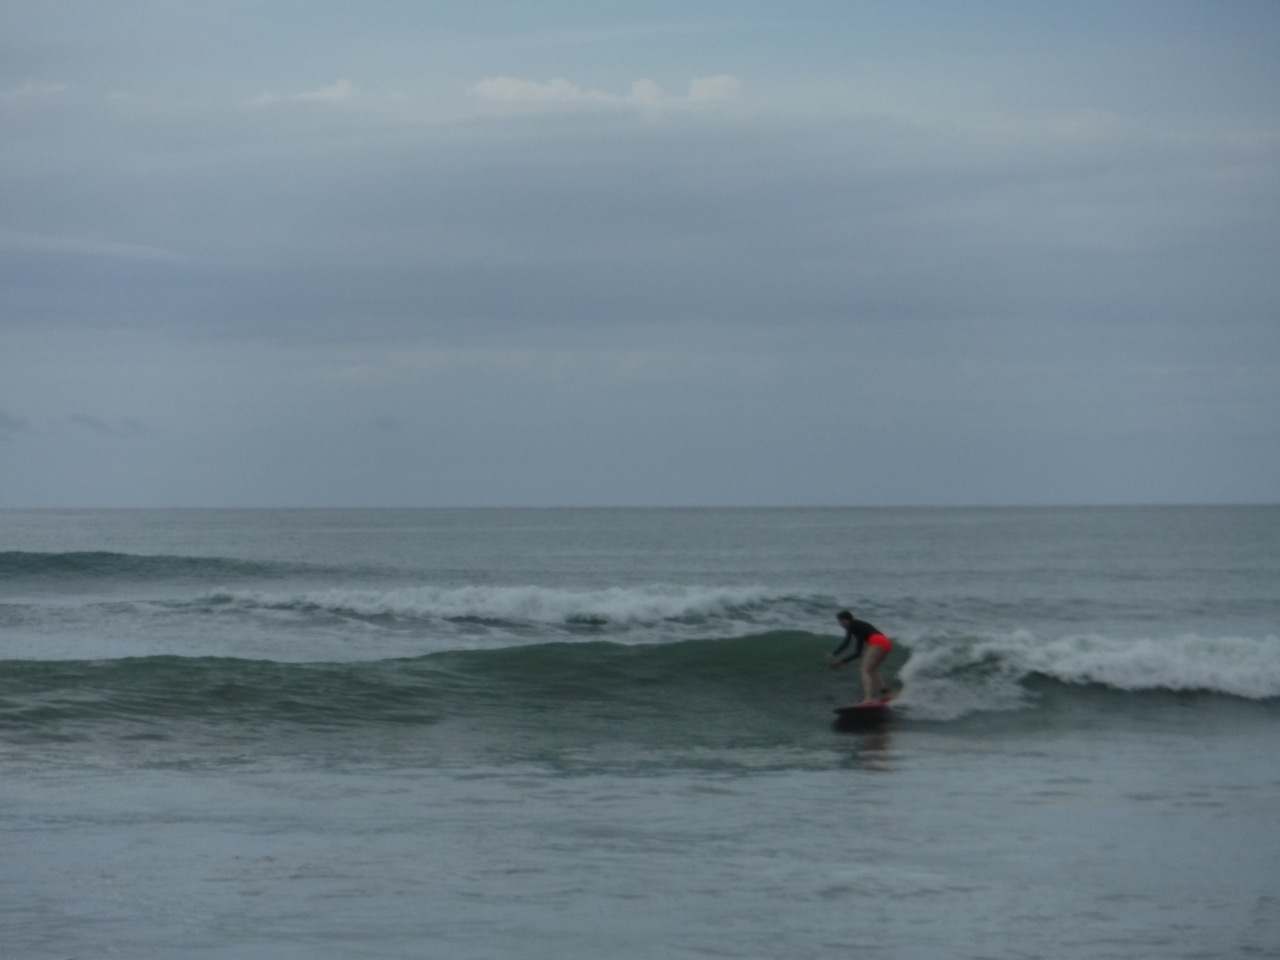 This is actually me surfing